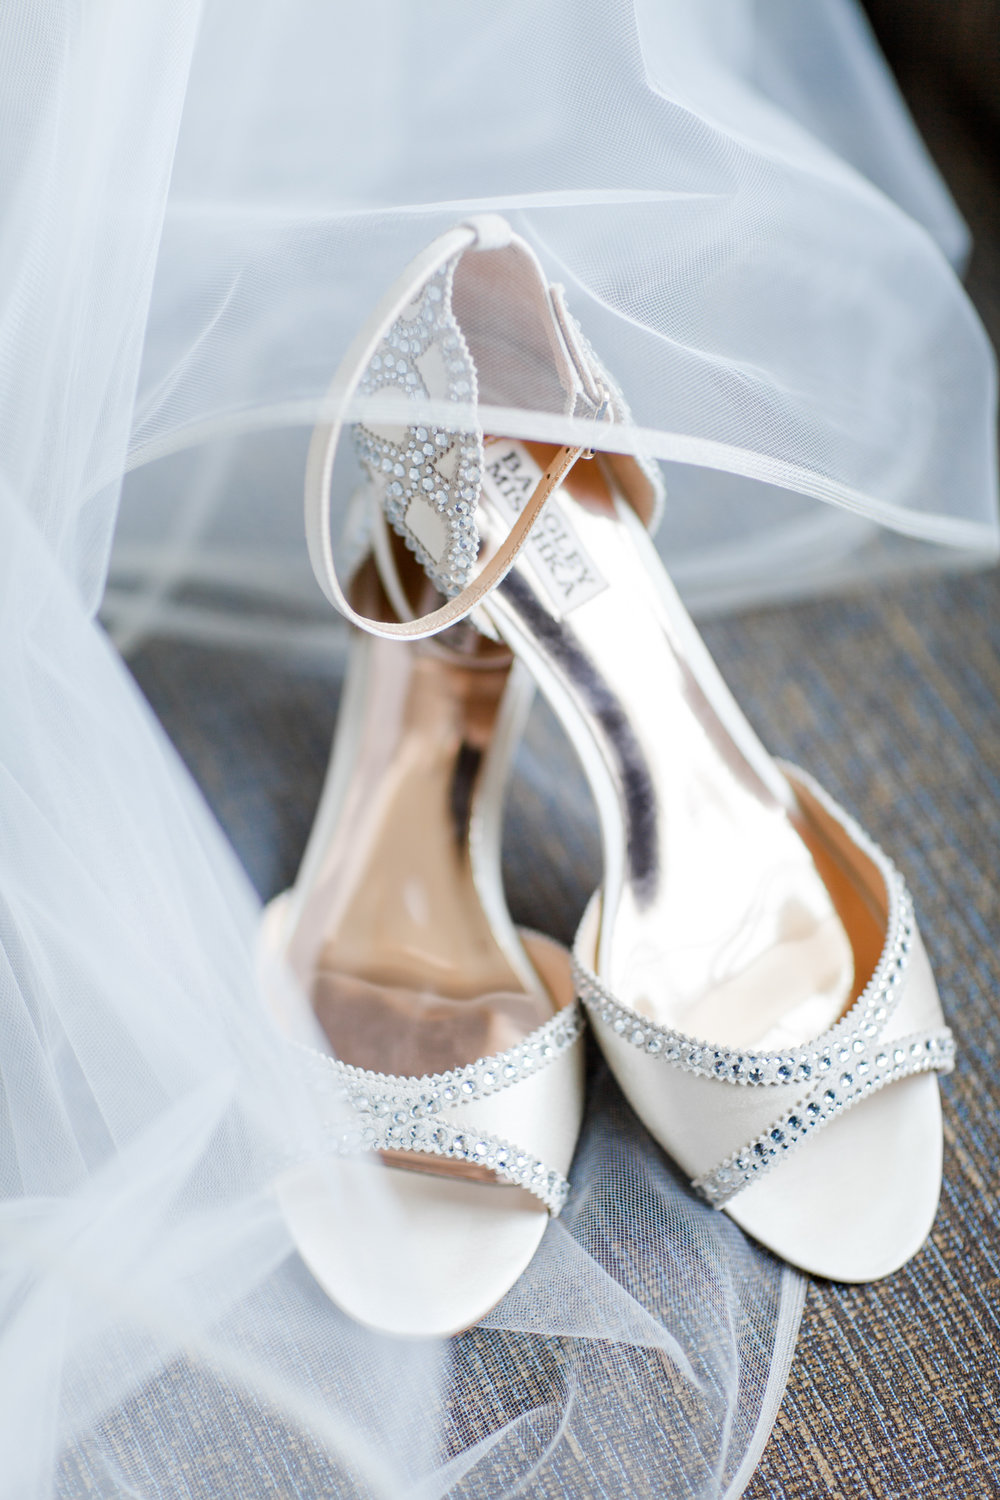 Badgley Mischka Bridal Shoes | details shot | Jessa Anderson Photography | Sixpence Events & Planning wedding blog | Hyatt Place St Paul